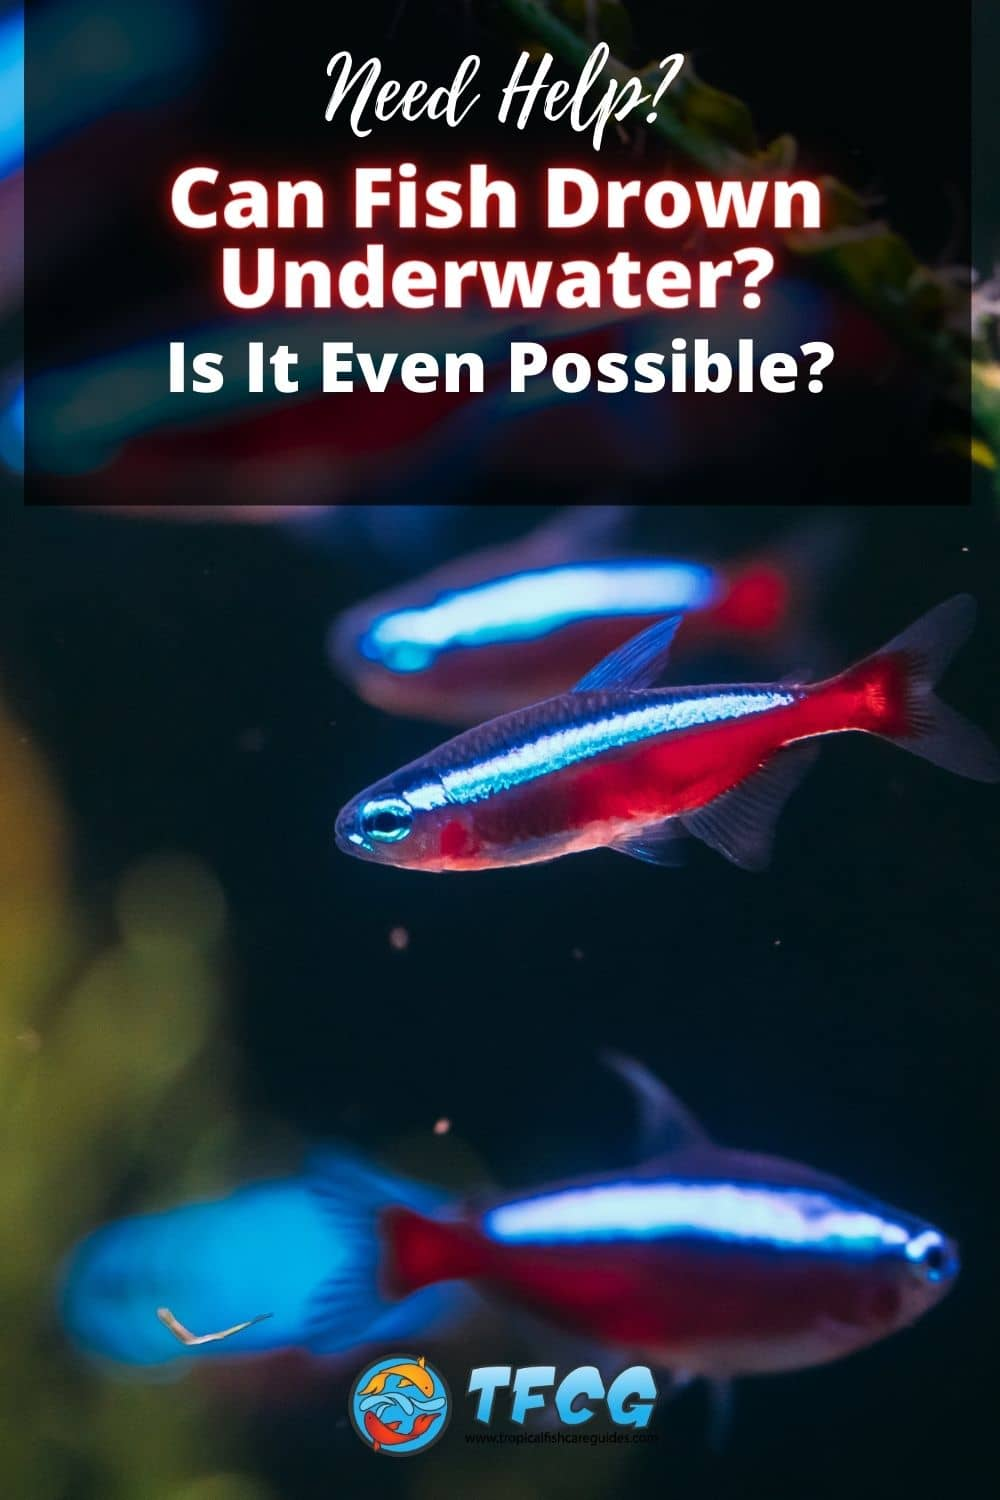 Can Fish Drown Underwater